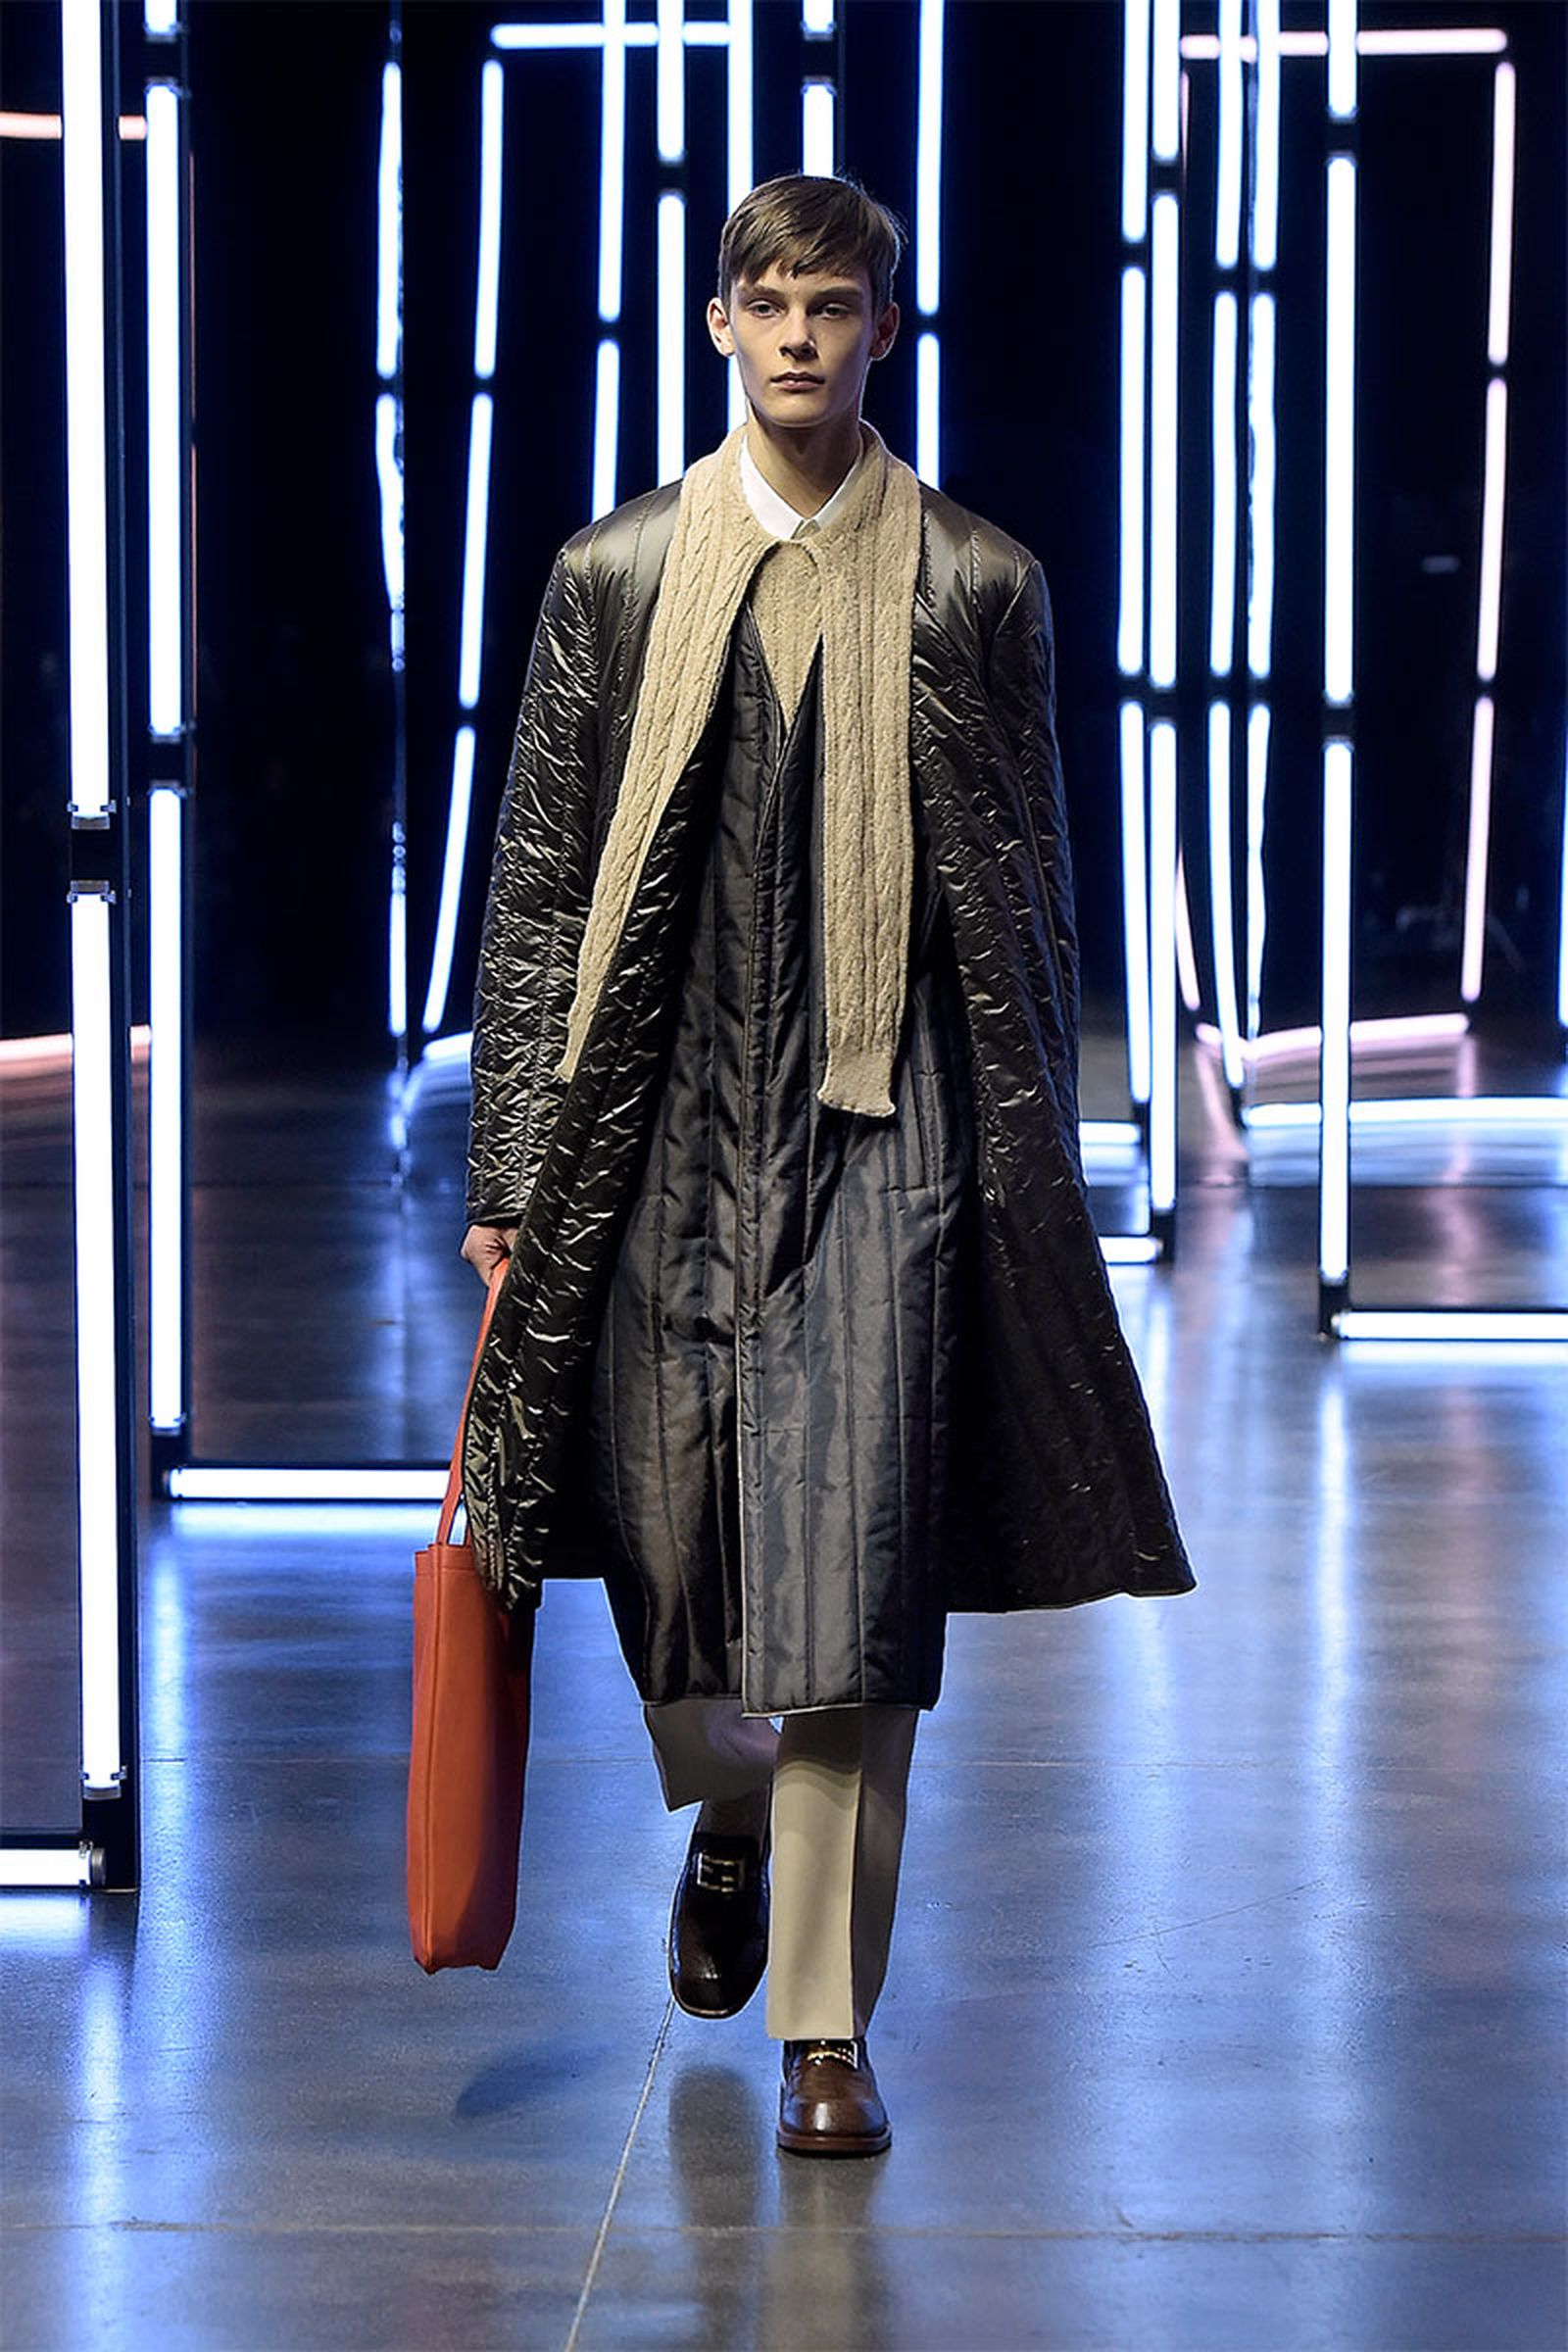 fendi-fall-mens-collection-2021-51